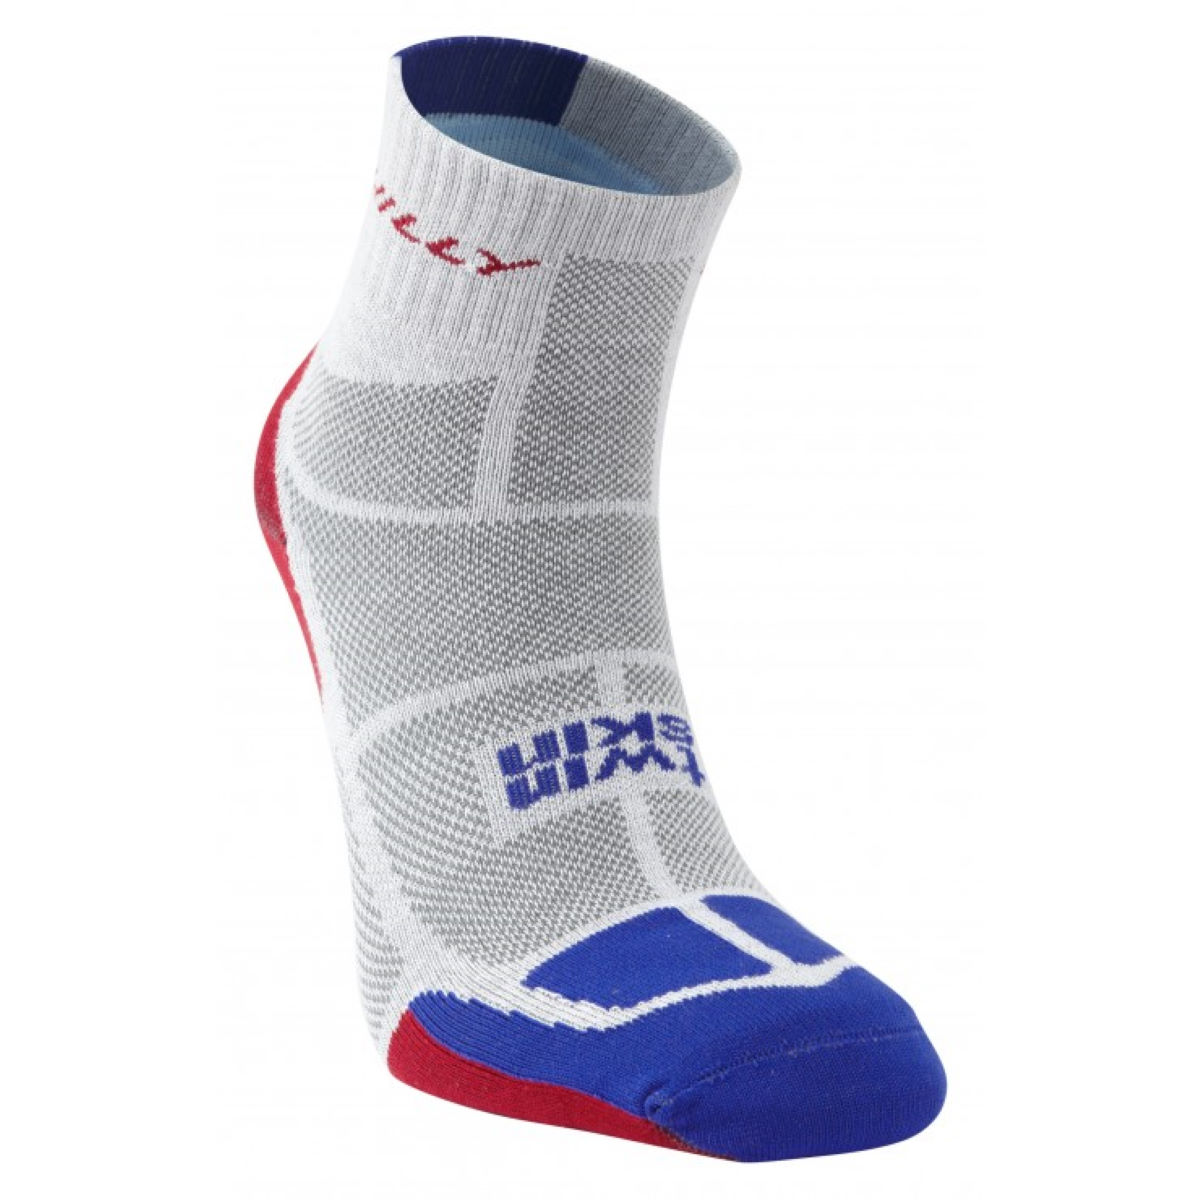 Chaussettes Hilly Twin Skin PE14 - S Grey/Blue/Red Chaussettes